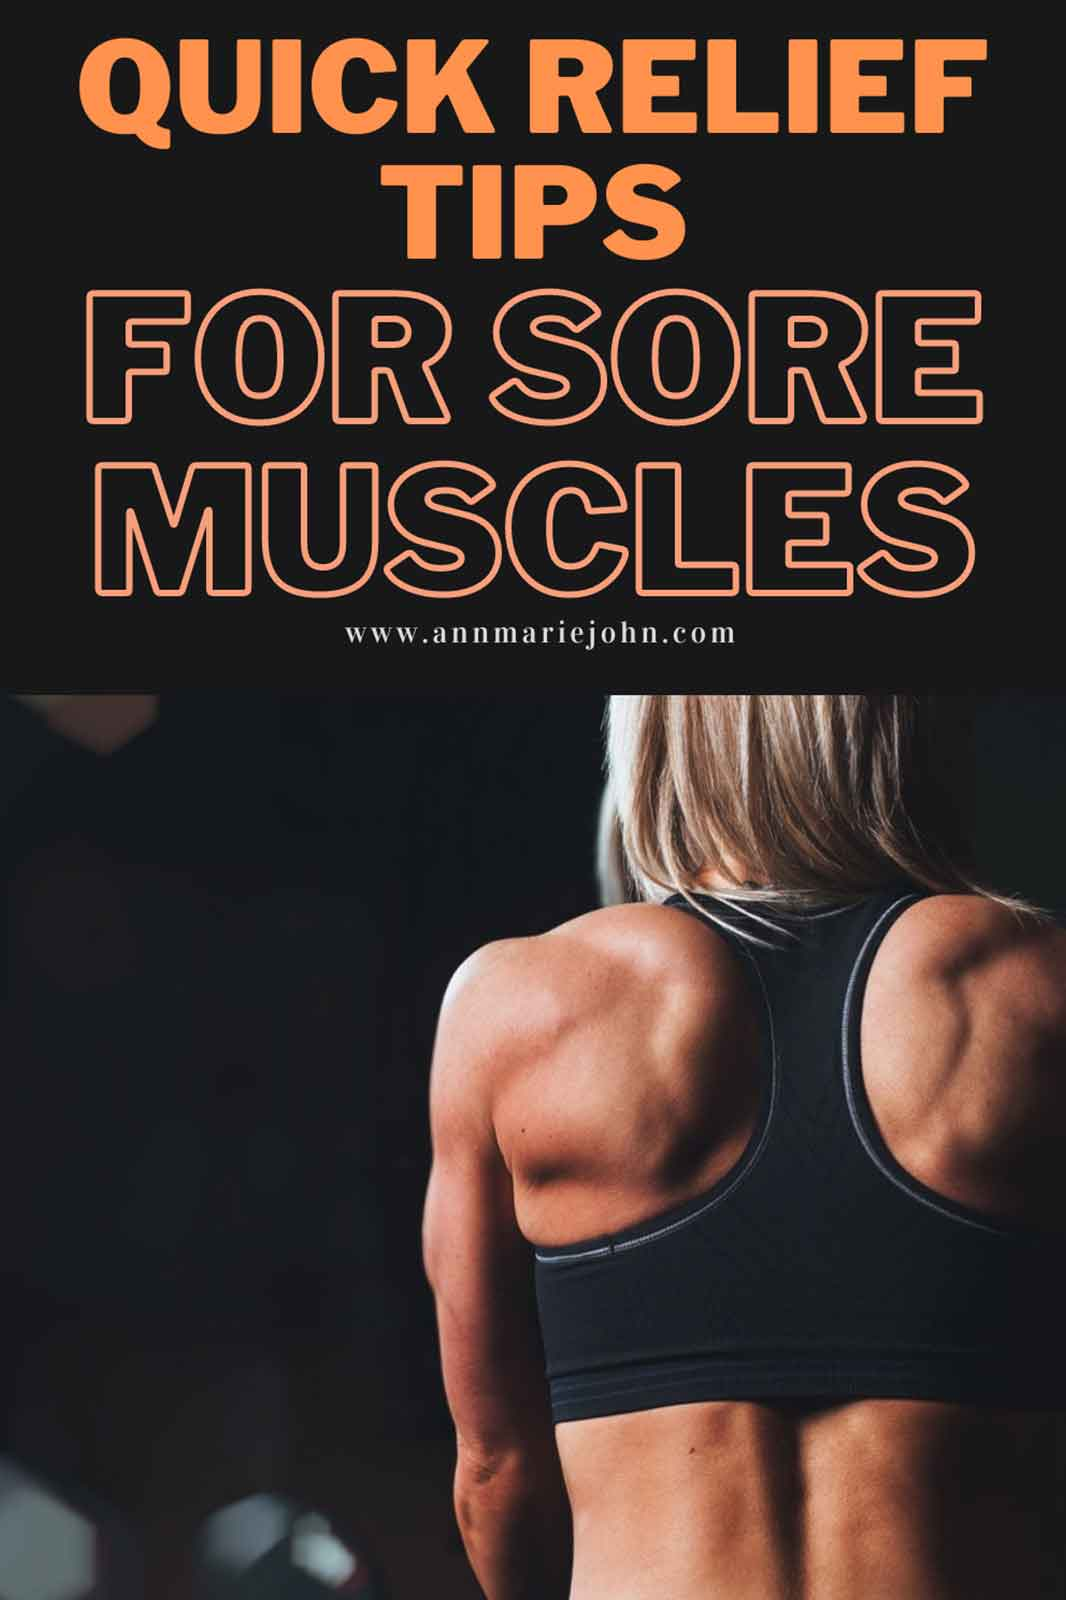 Quick Relief Tips for Sore Muscles After Exercise